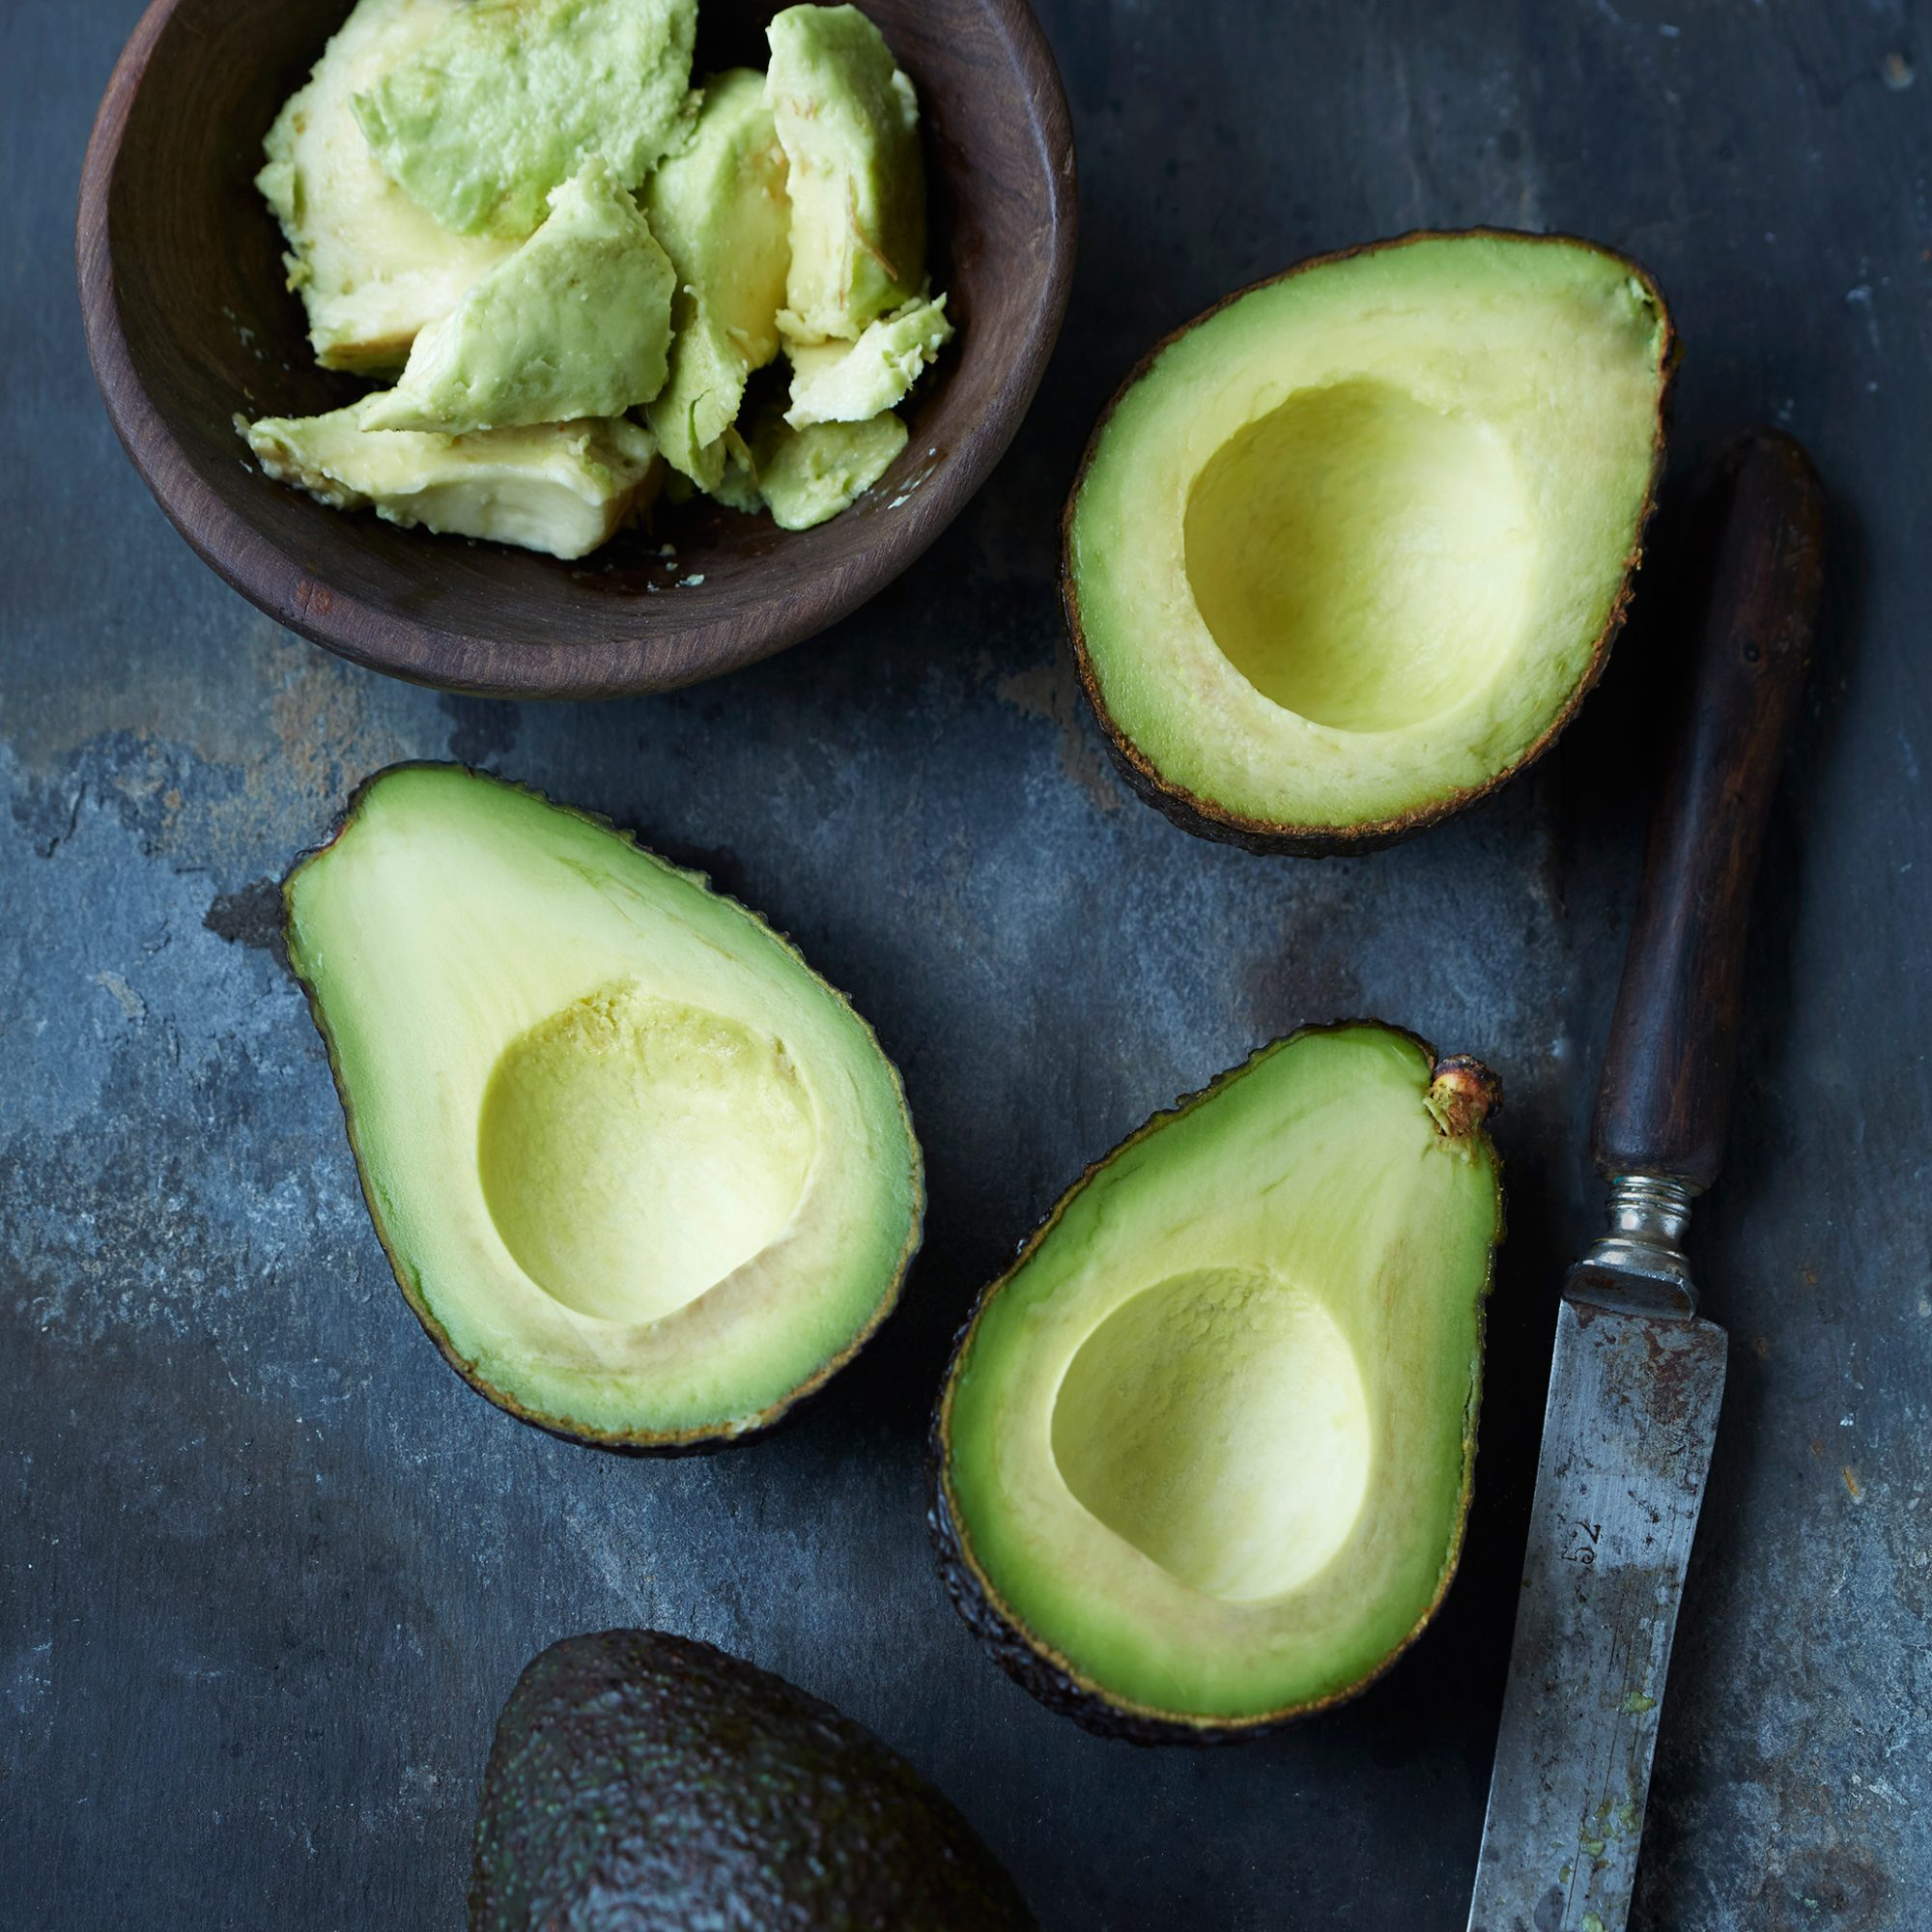 EAT MORE AVOCADOS FWX